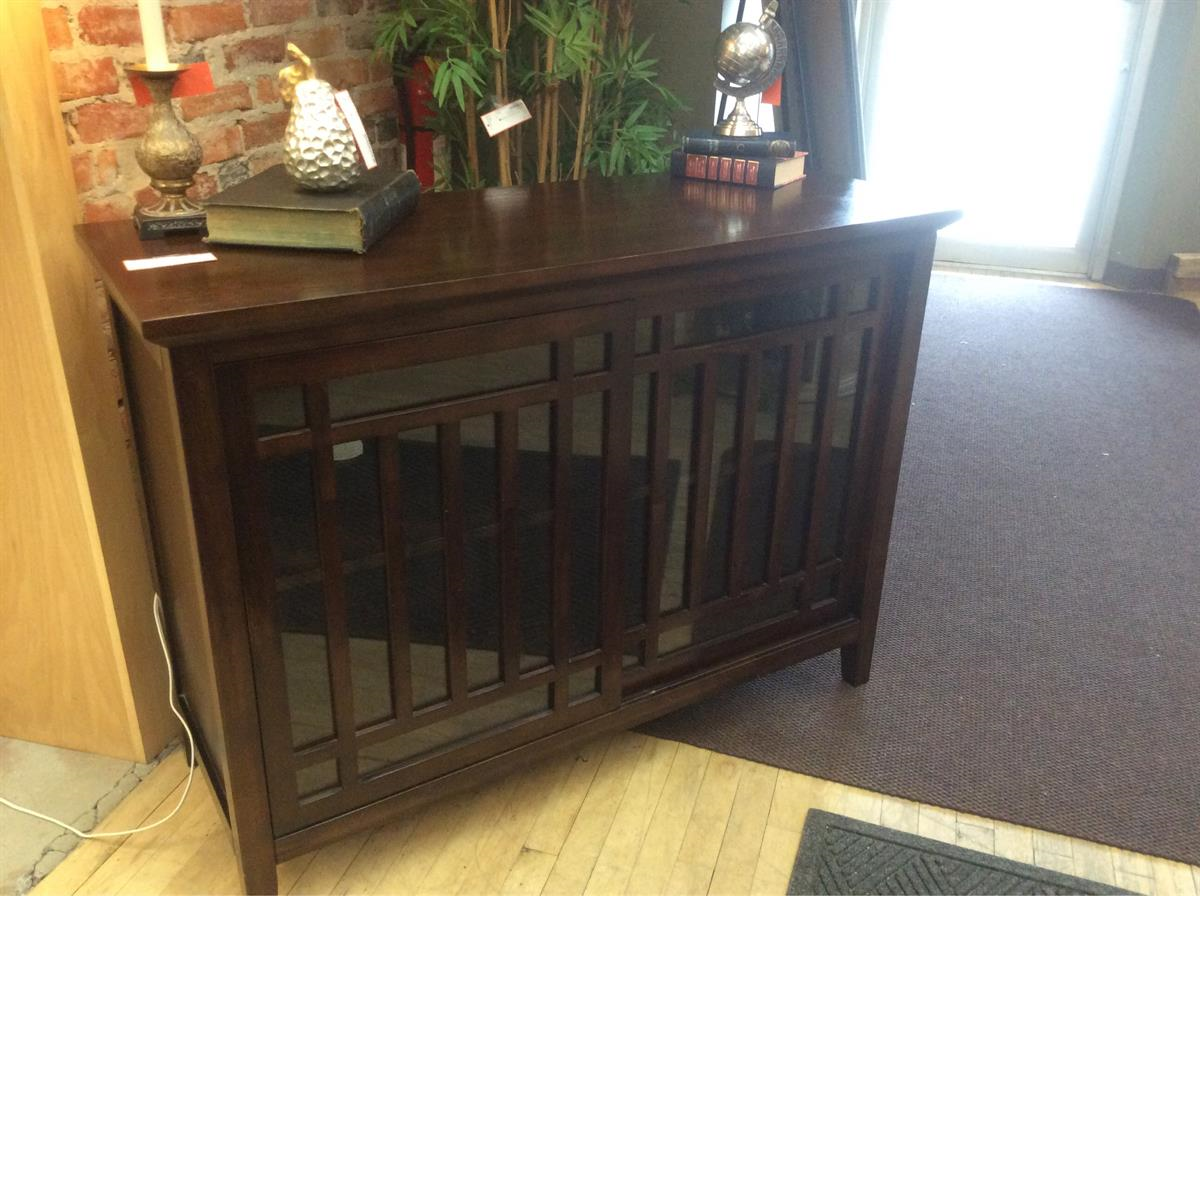 Consigned Pier One Cabinet at Refashion Consigned Furniture and Clothing